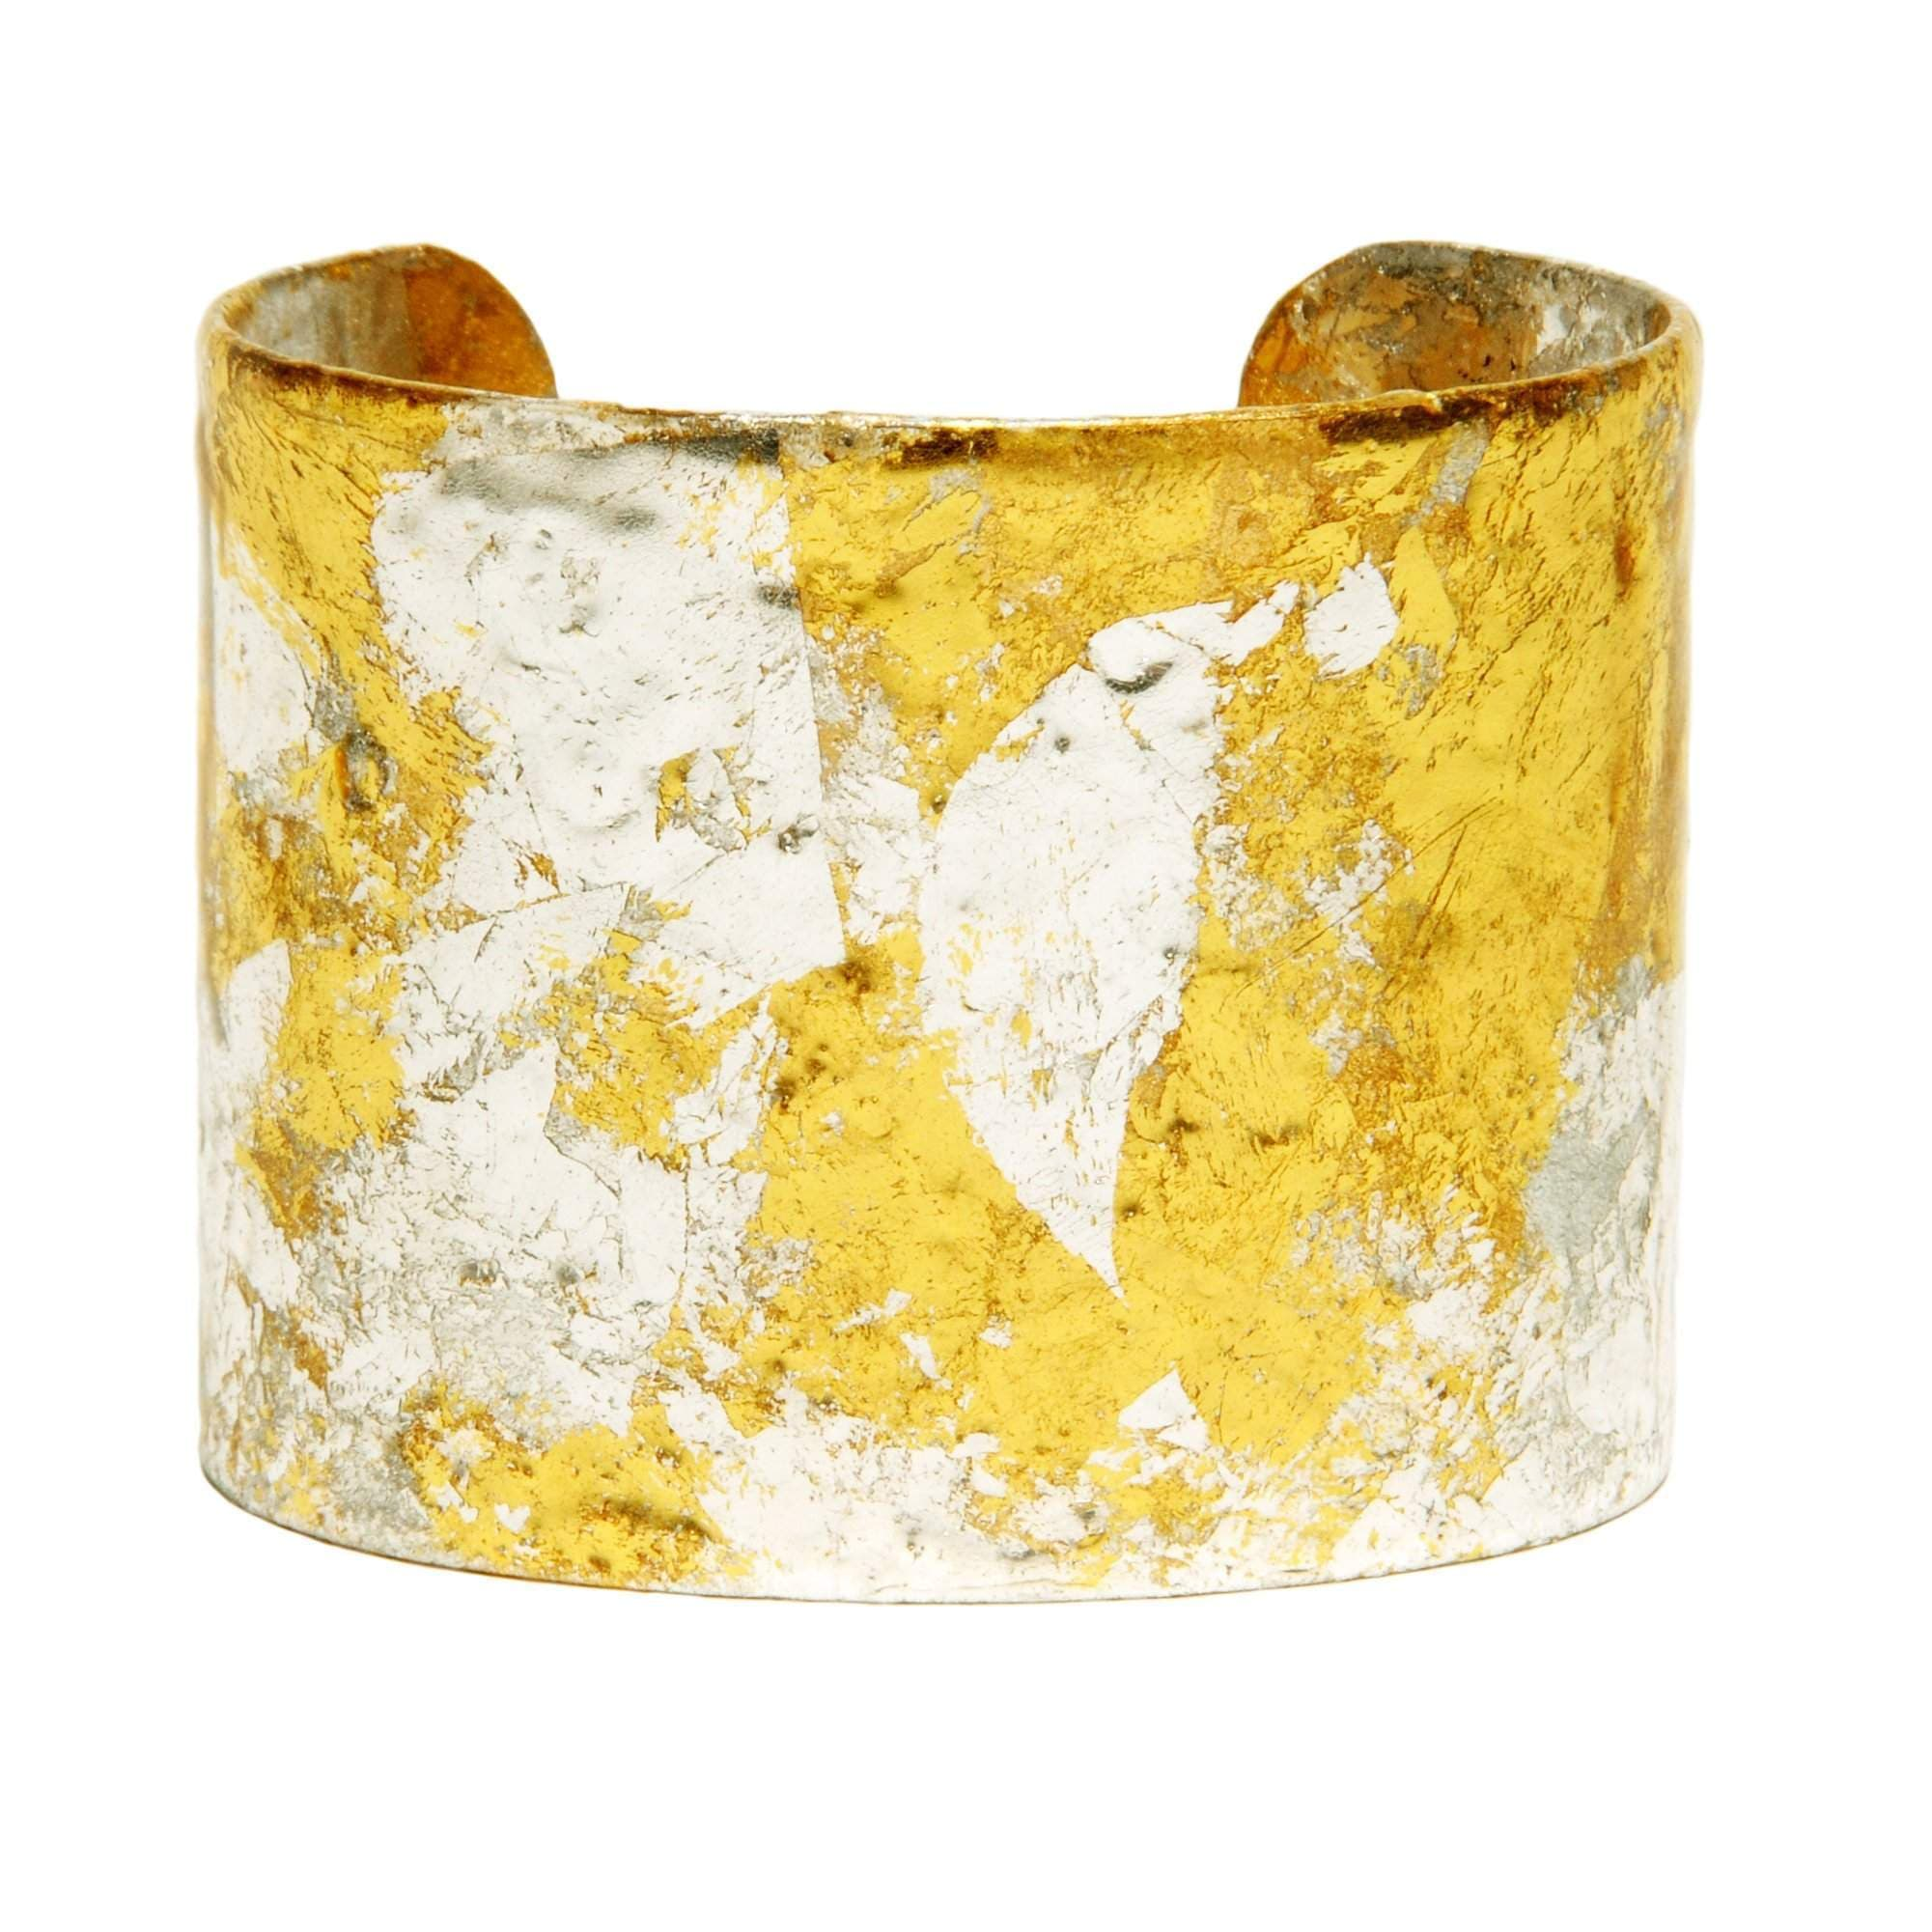 "Stockholm 2"" Gold Cuff - VO132-Evocateur-Renee Taylor Gallery"